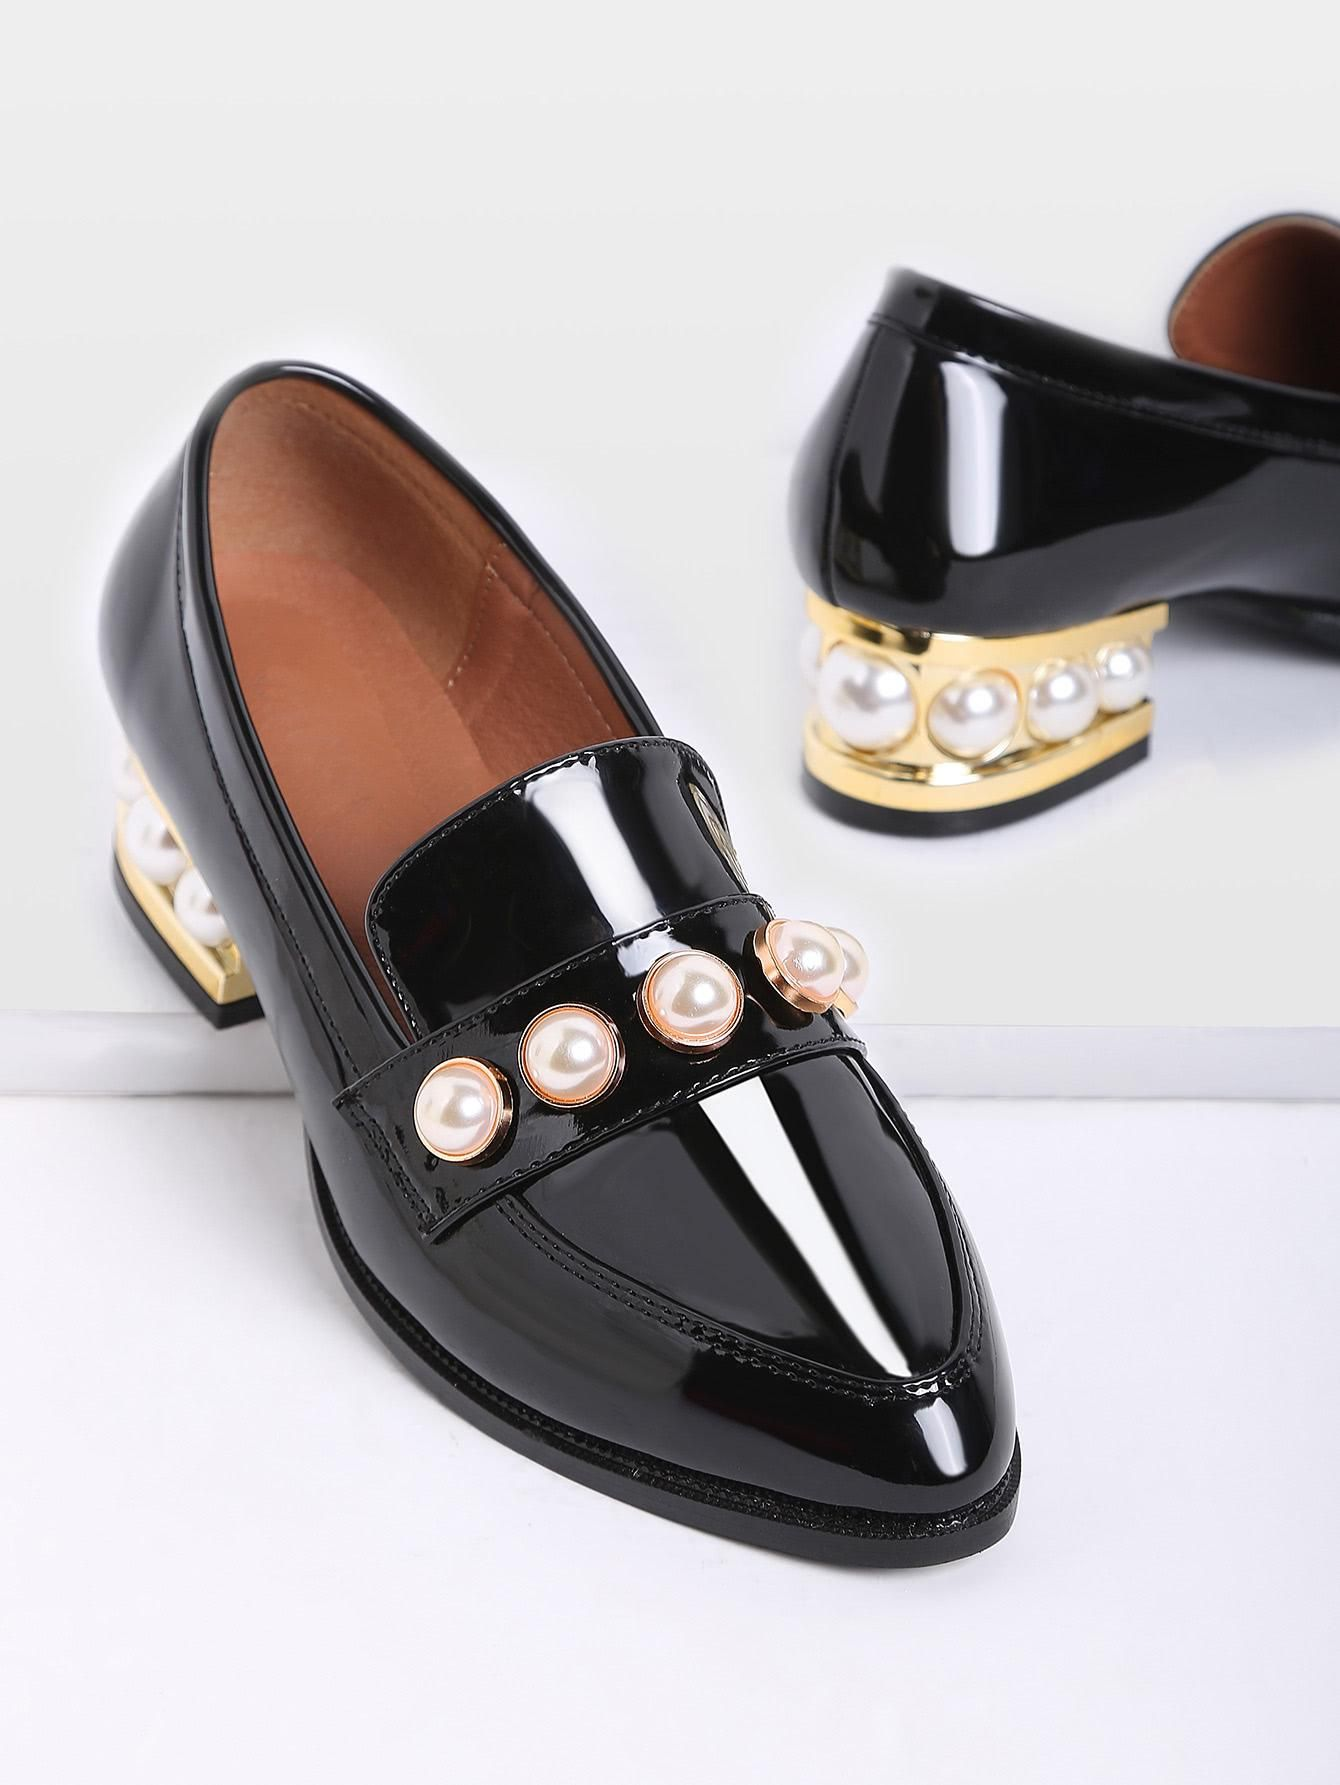 a9021abeaf SheIn - SheIn Black Pearl Detail Chunky Heeled Patent Leather Loafers -  AdoreWe.com